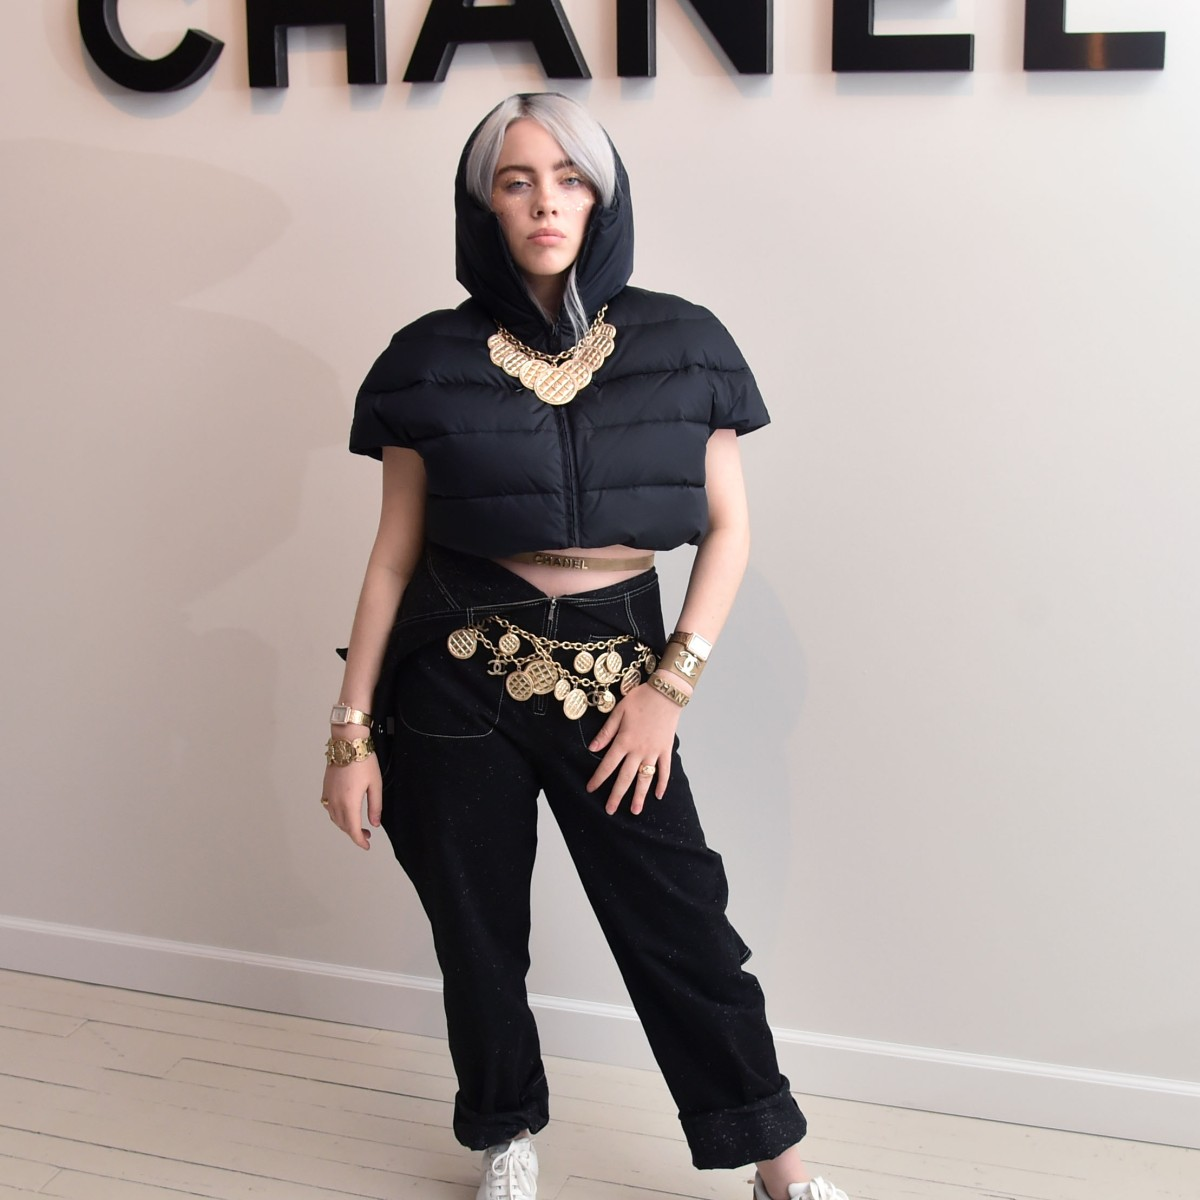 Billie Eilish S Style See The Singer S Best Fashion Moments Over The Years